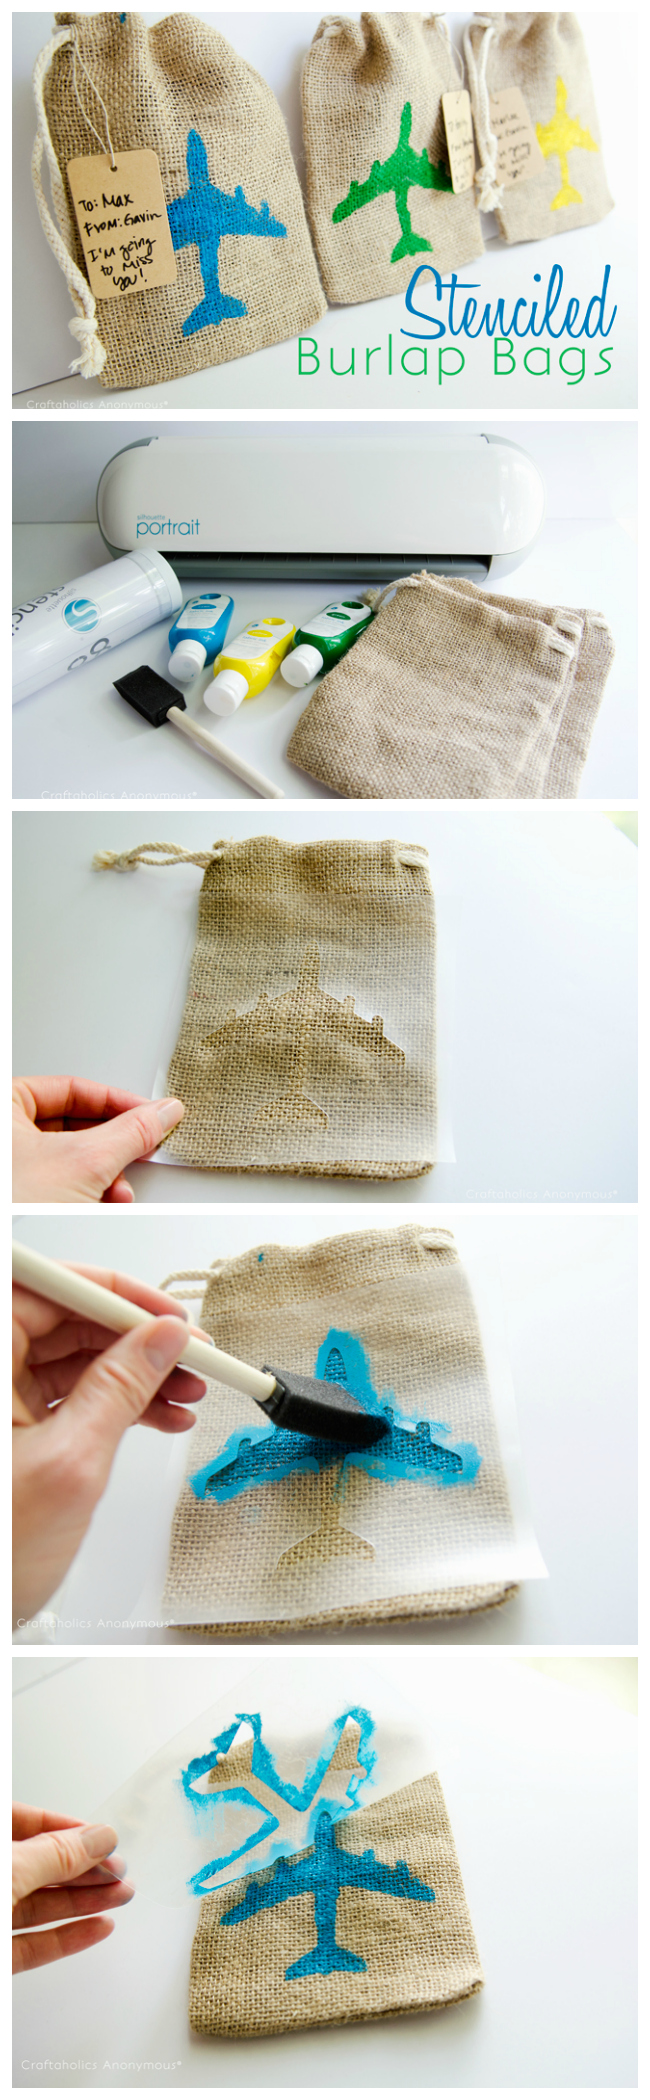 DIY stenciled burlap bags. How cute would these be for a party or baby shower?!